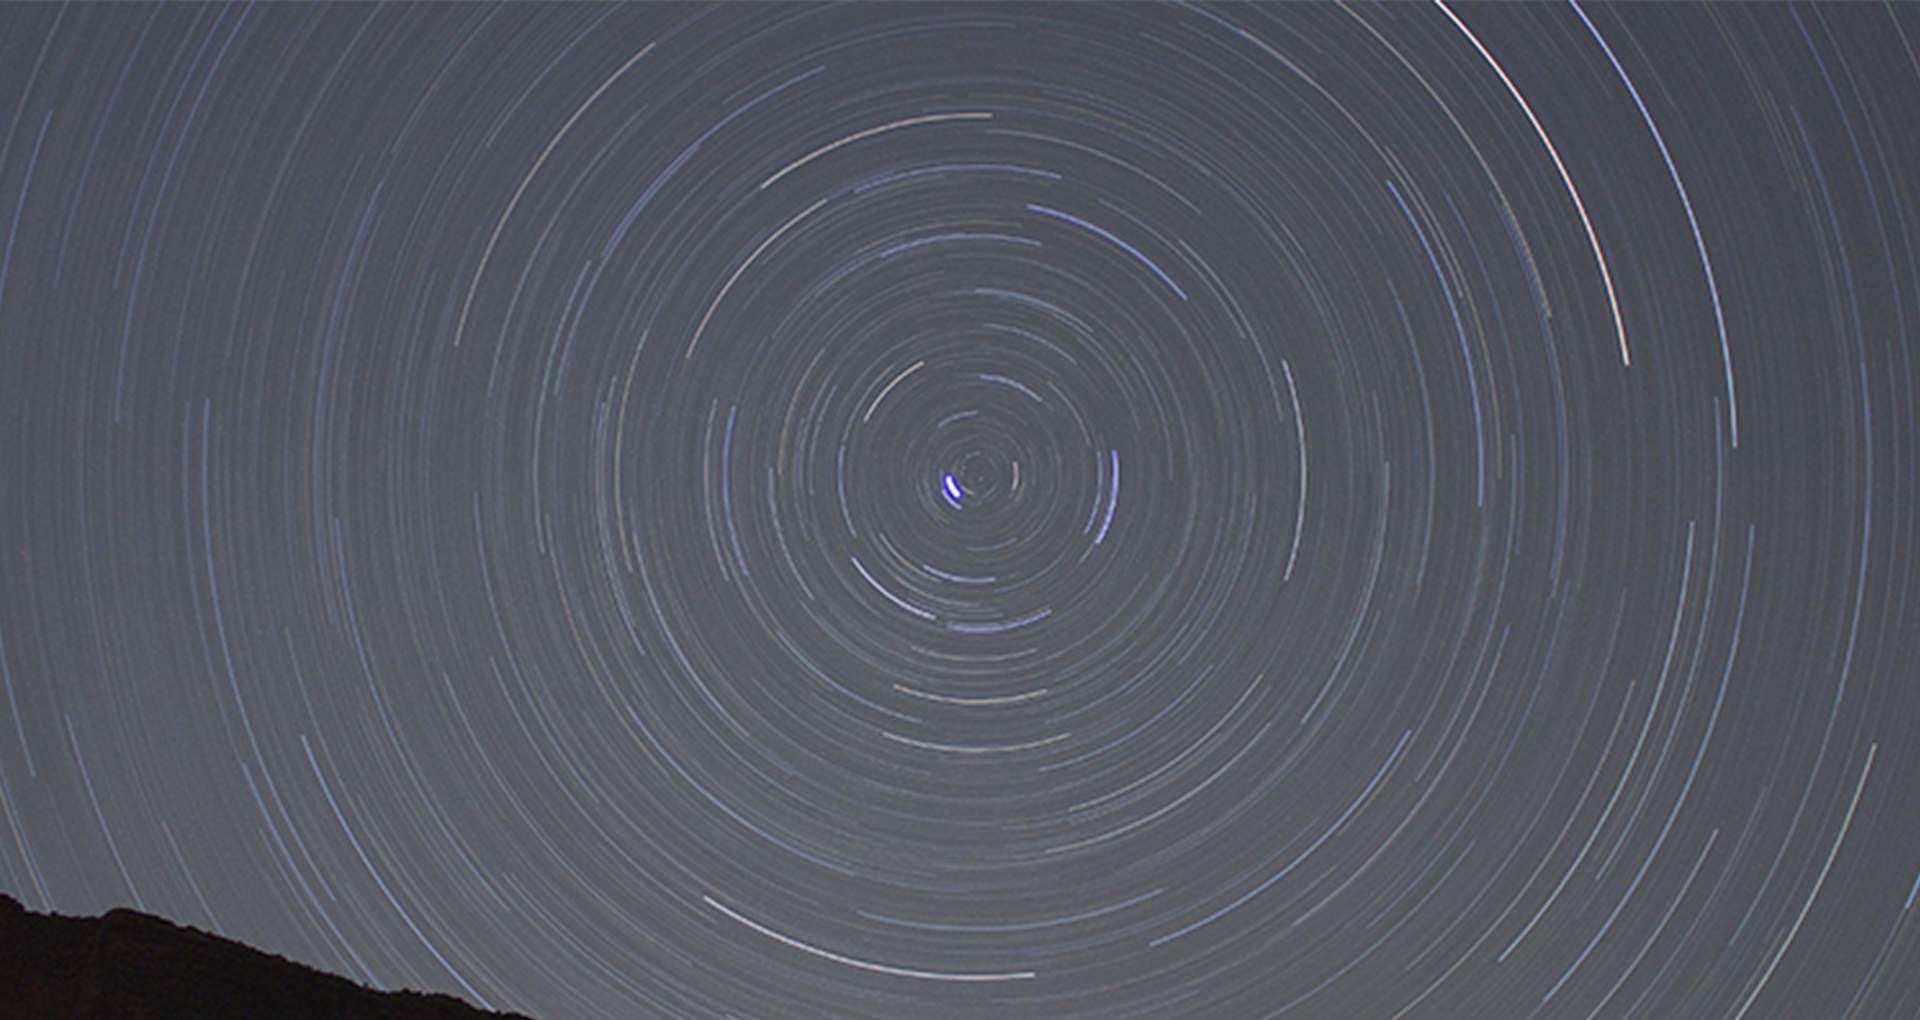 Color photo by night. Spirals in the sky